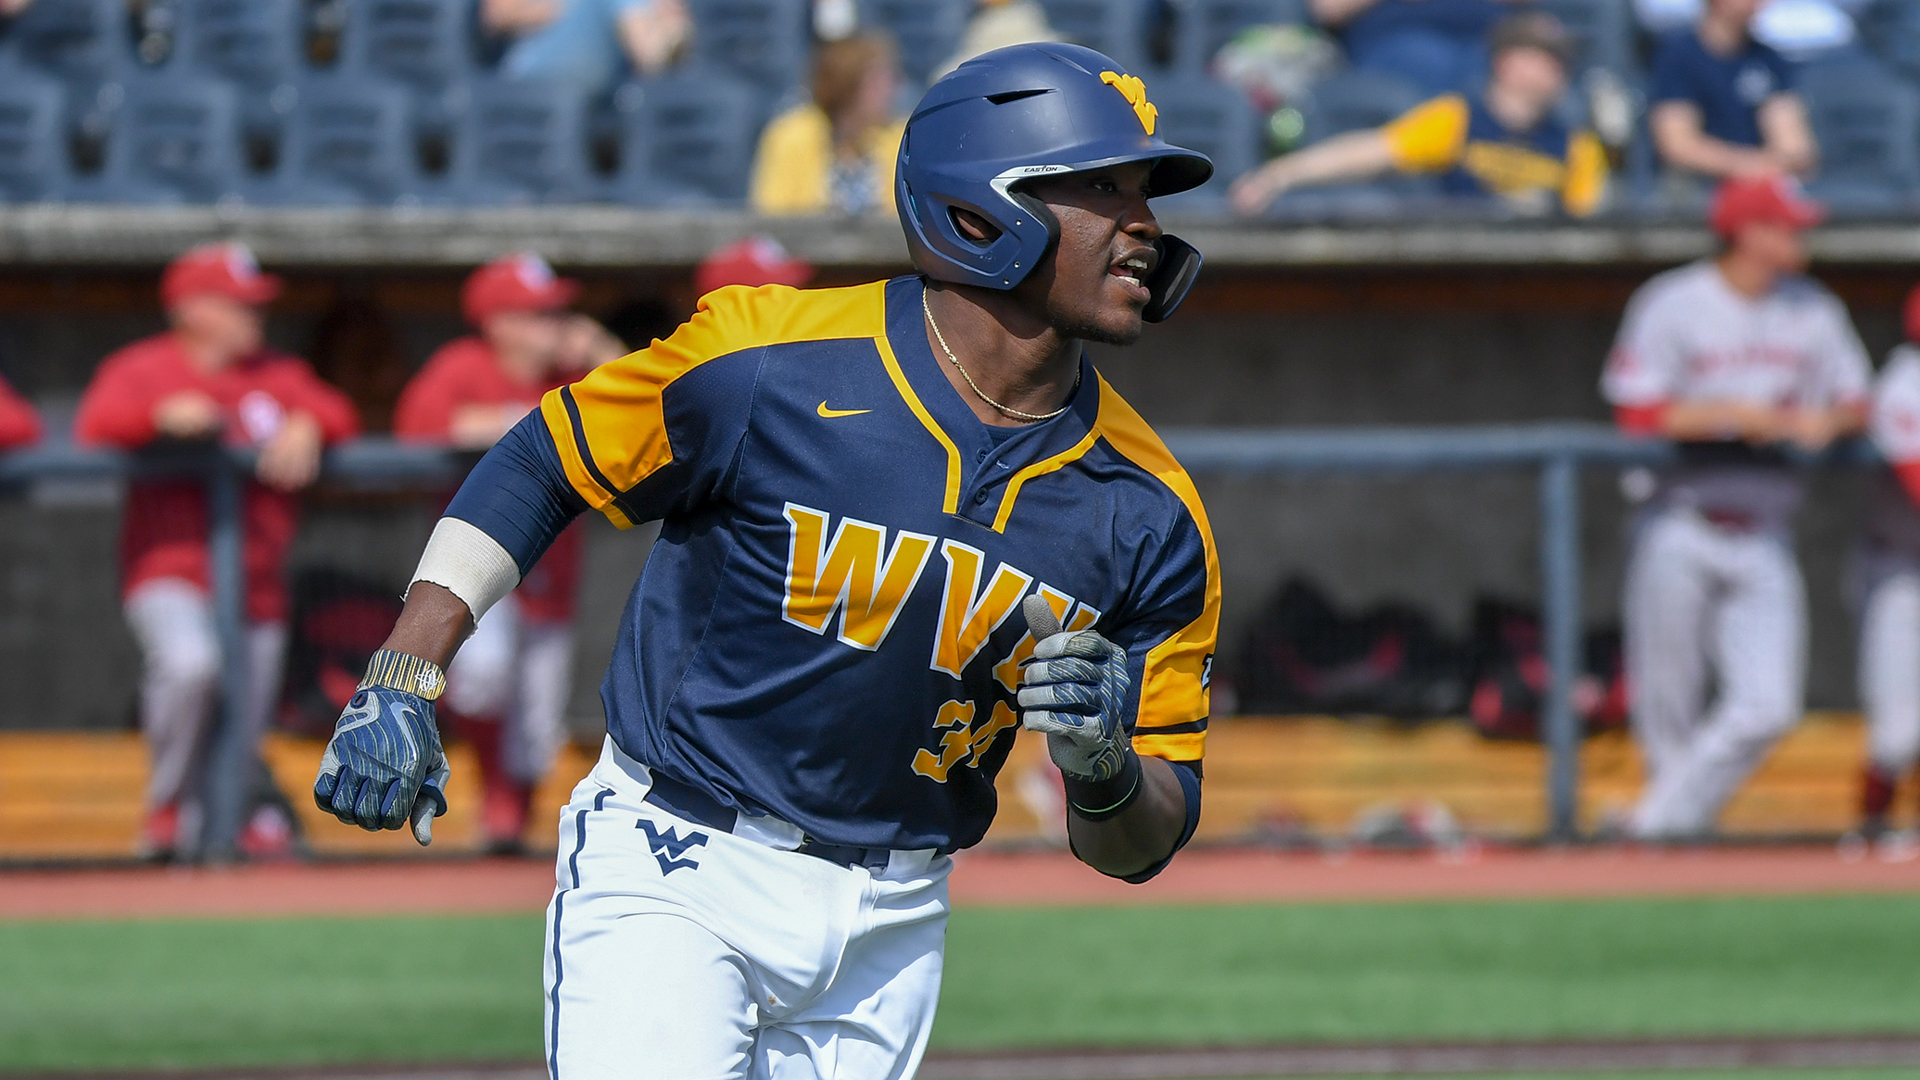 fc721d15d5a70 WVU Downs No. 19 Oklahoma to Even Series - West Virginia University ...